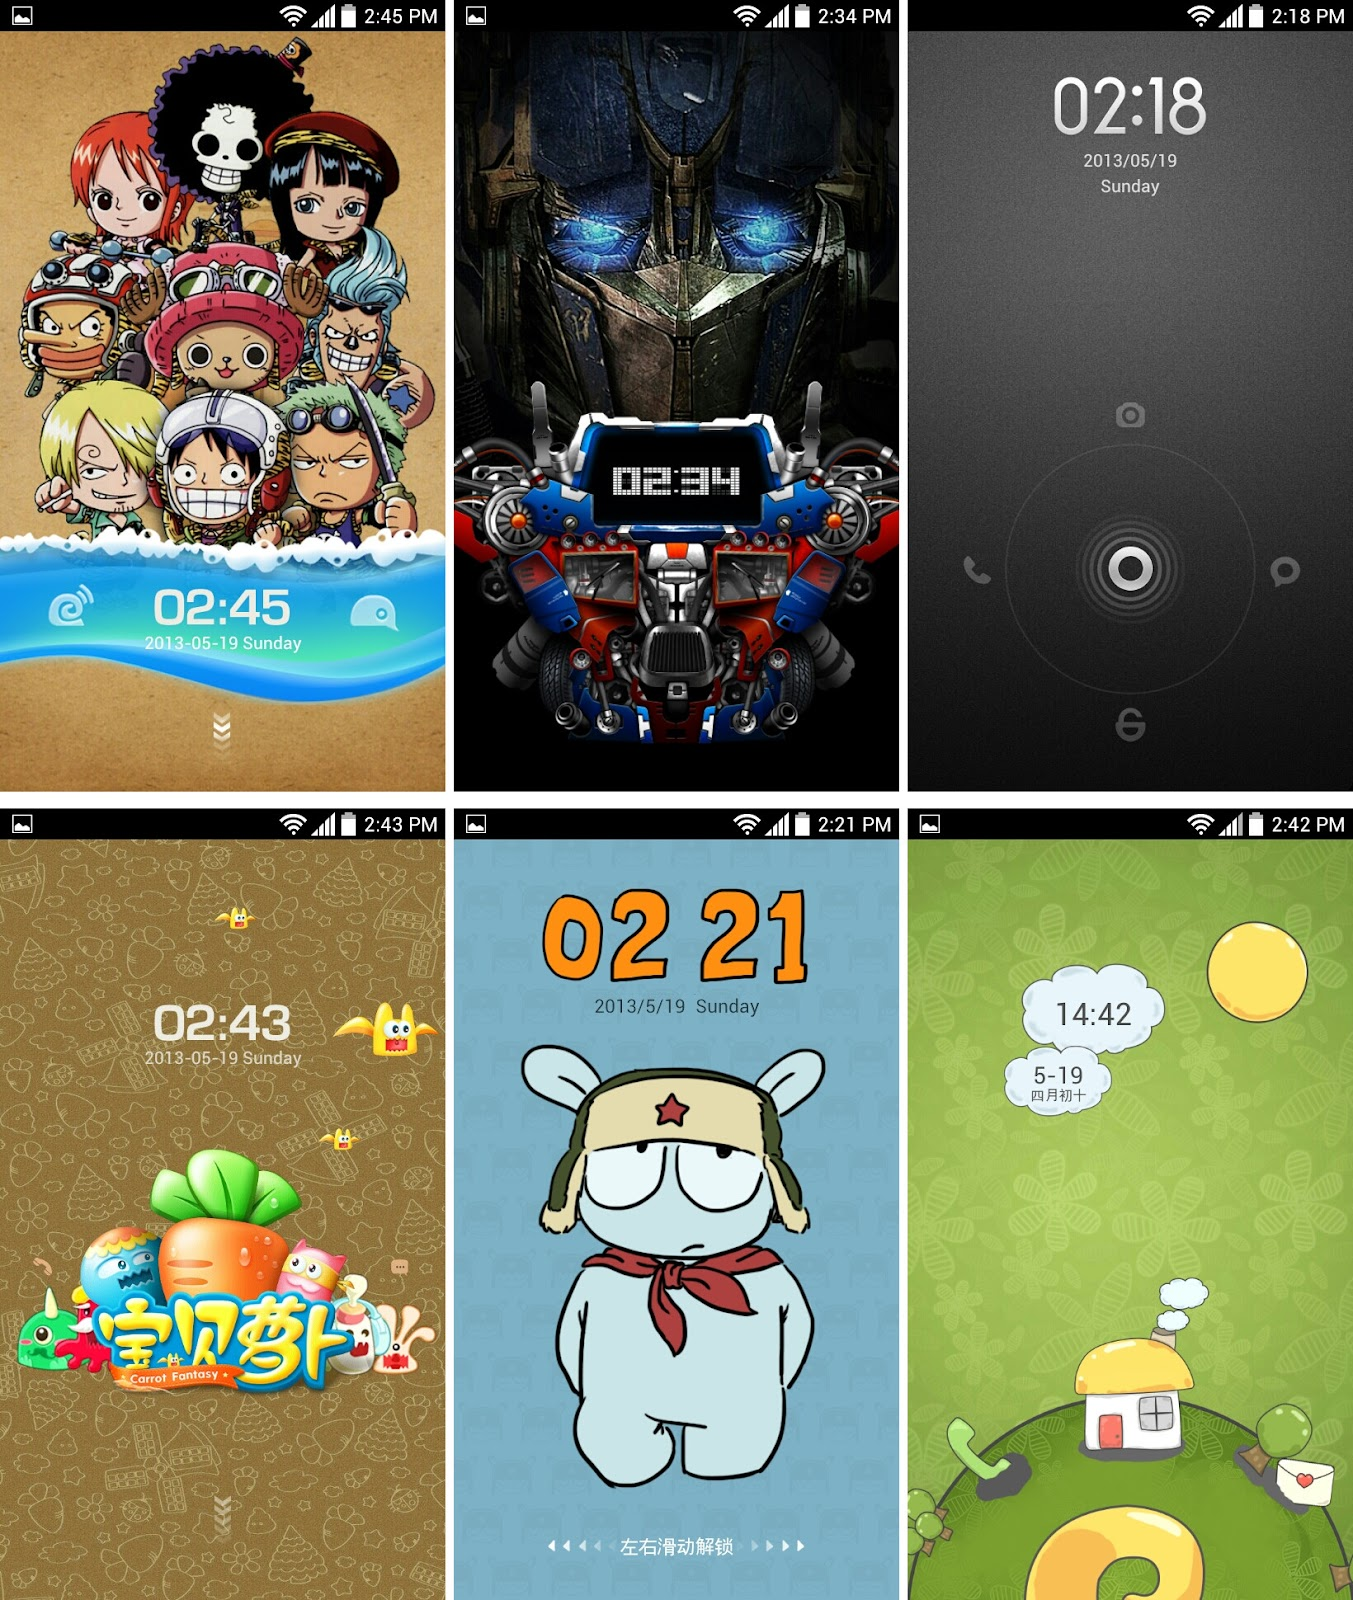 THEMES][MS870] All MIUI Themes - LG Spirit 4G | Android Forums